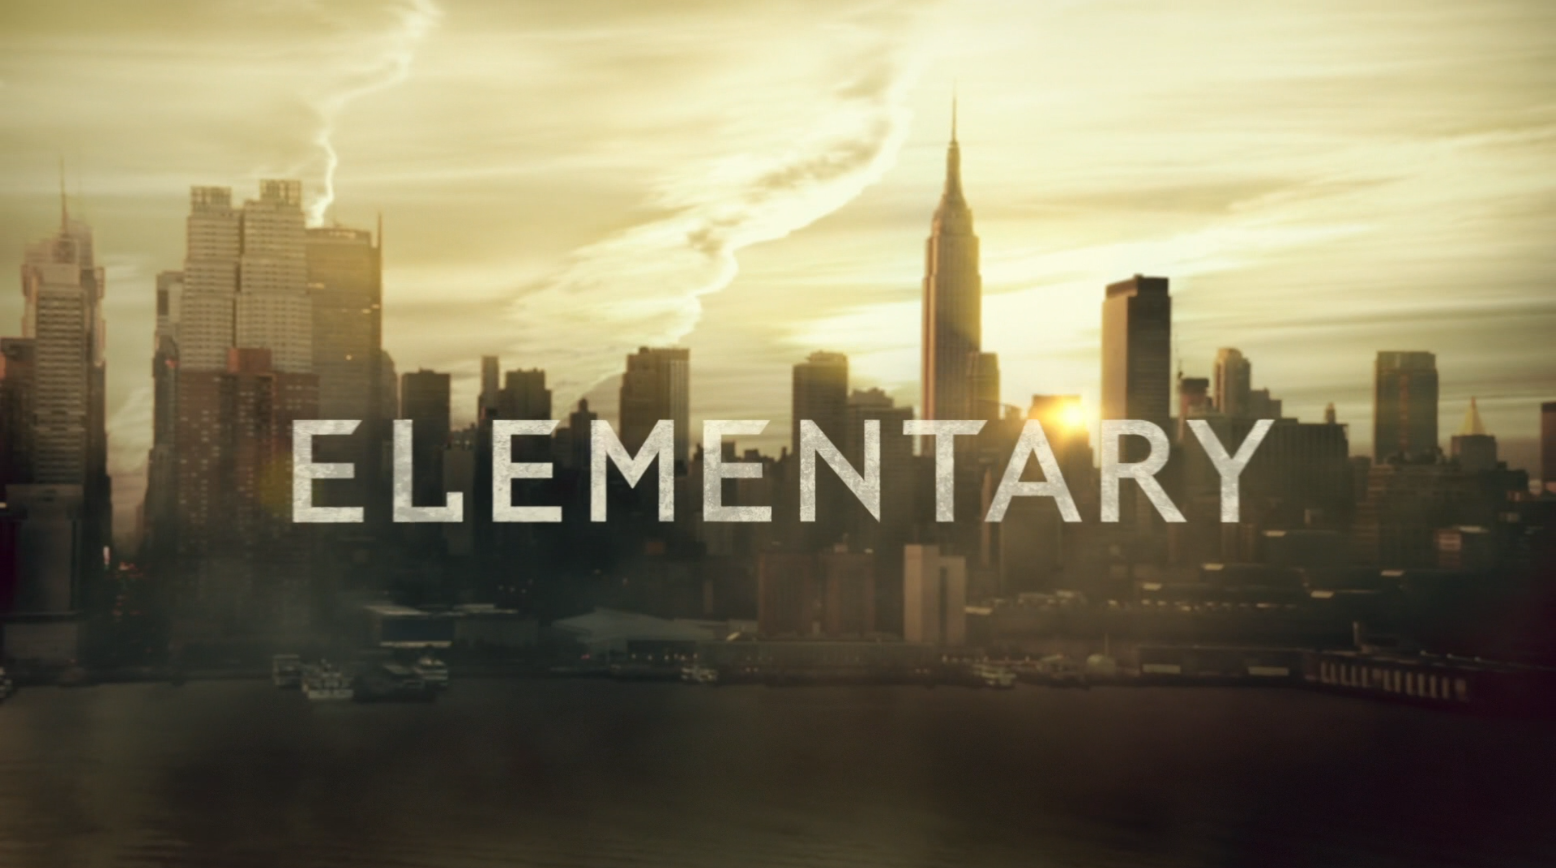 Elementary - Production Listing